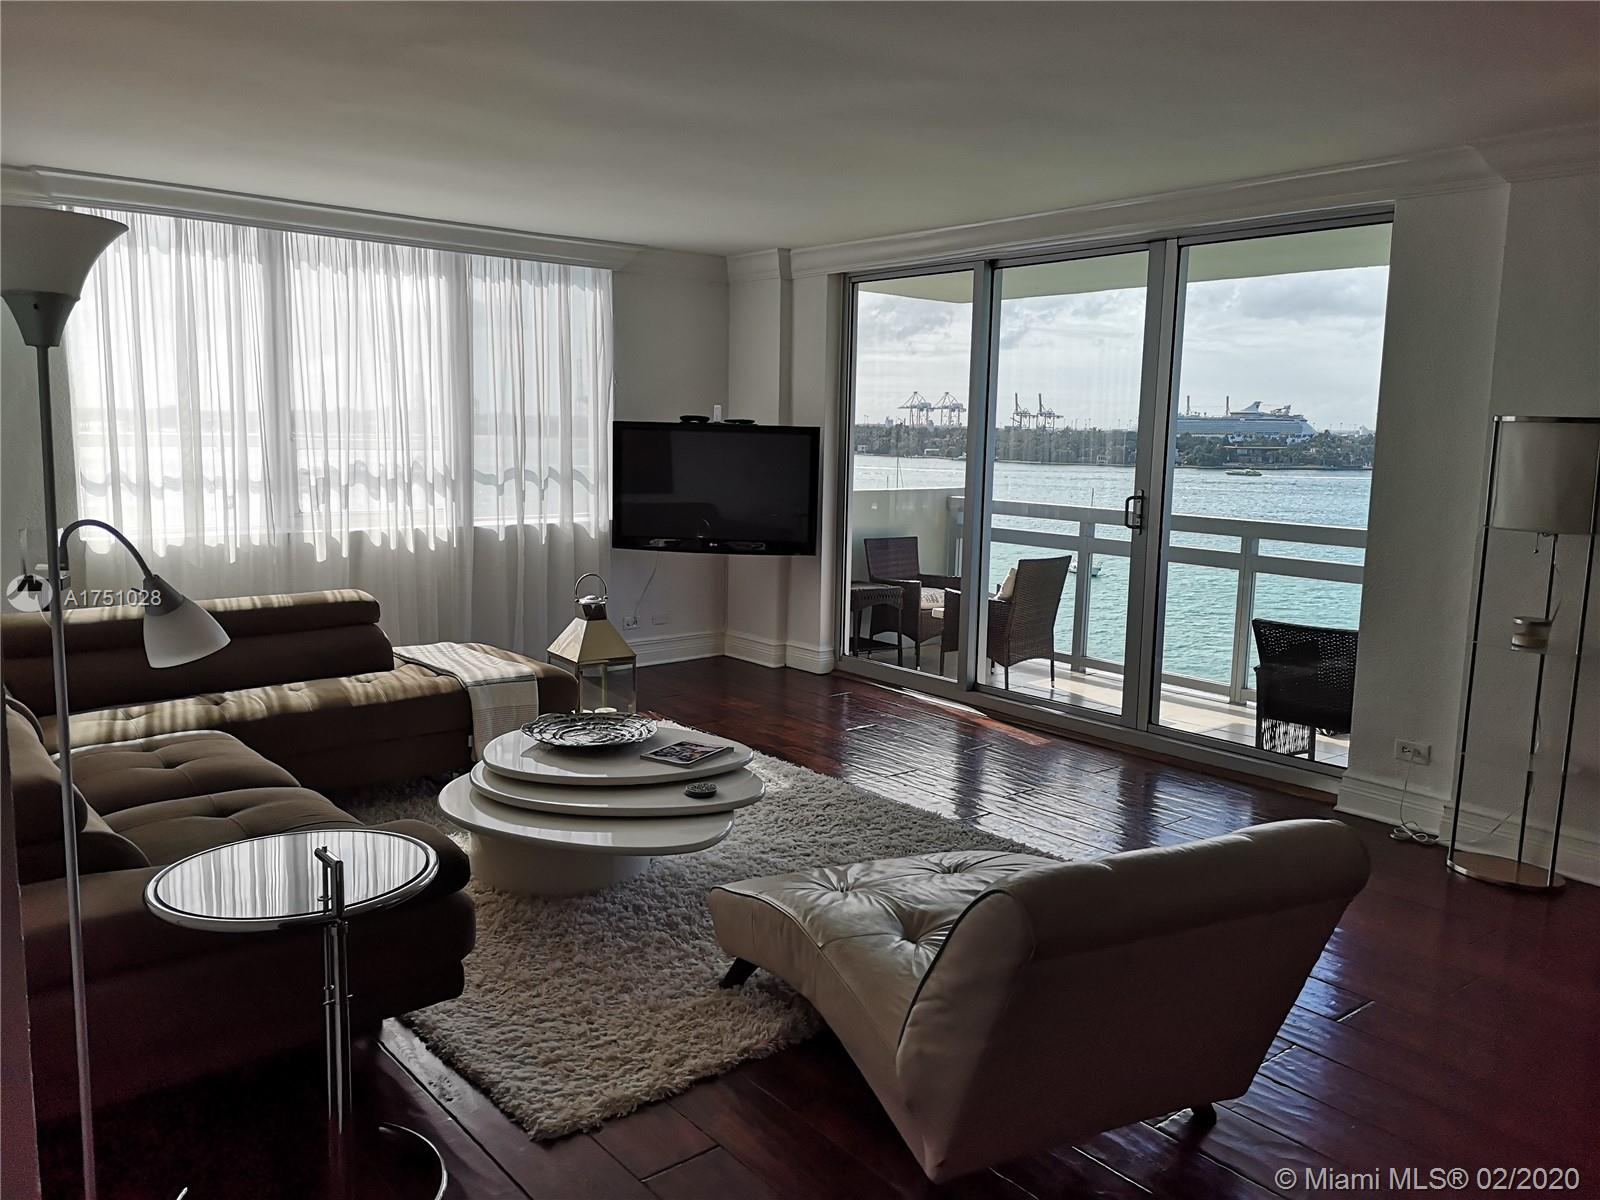 Flamingo South Beach #838S - 1500 BAY RD #838S, Miami Beach, FL 33139